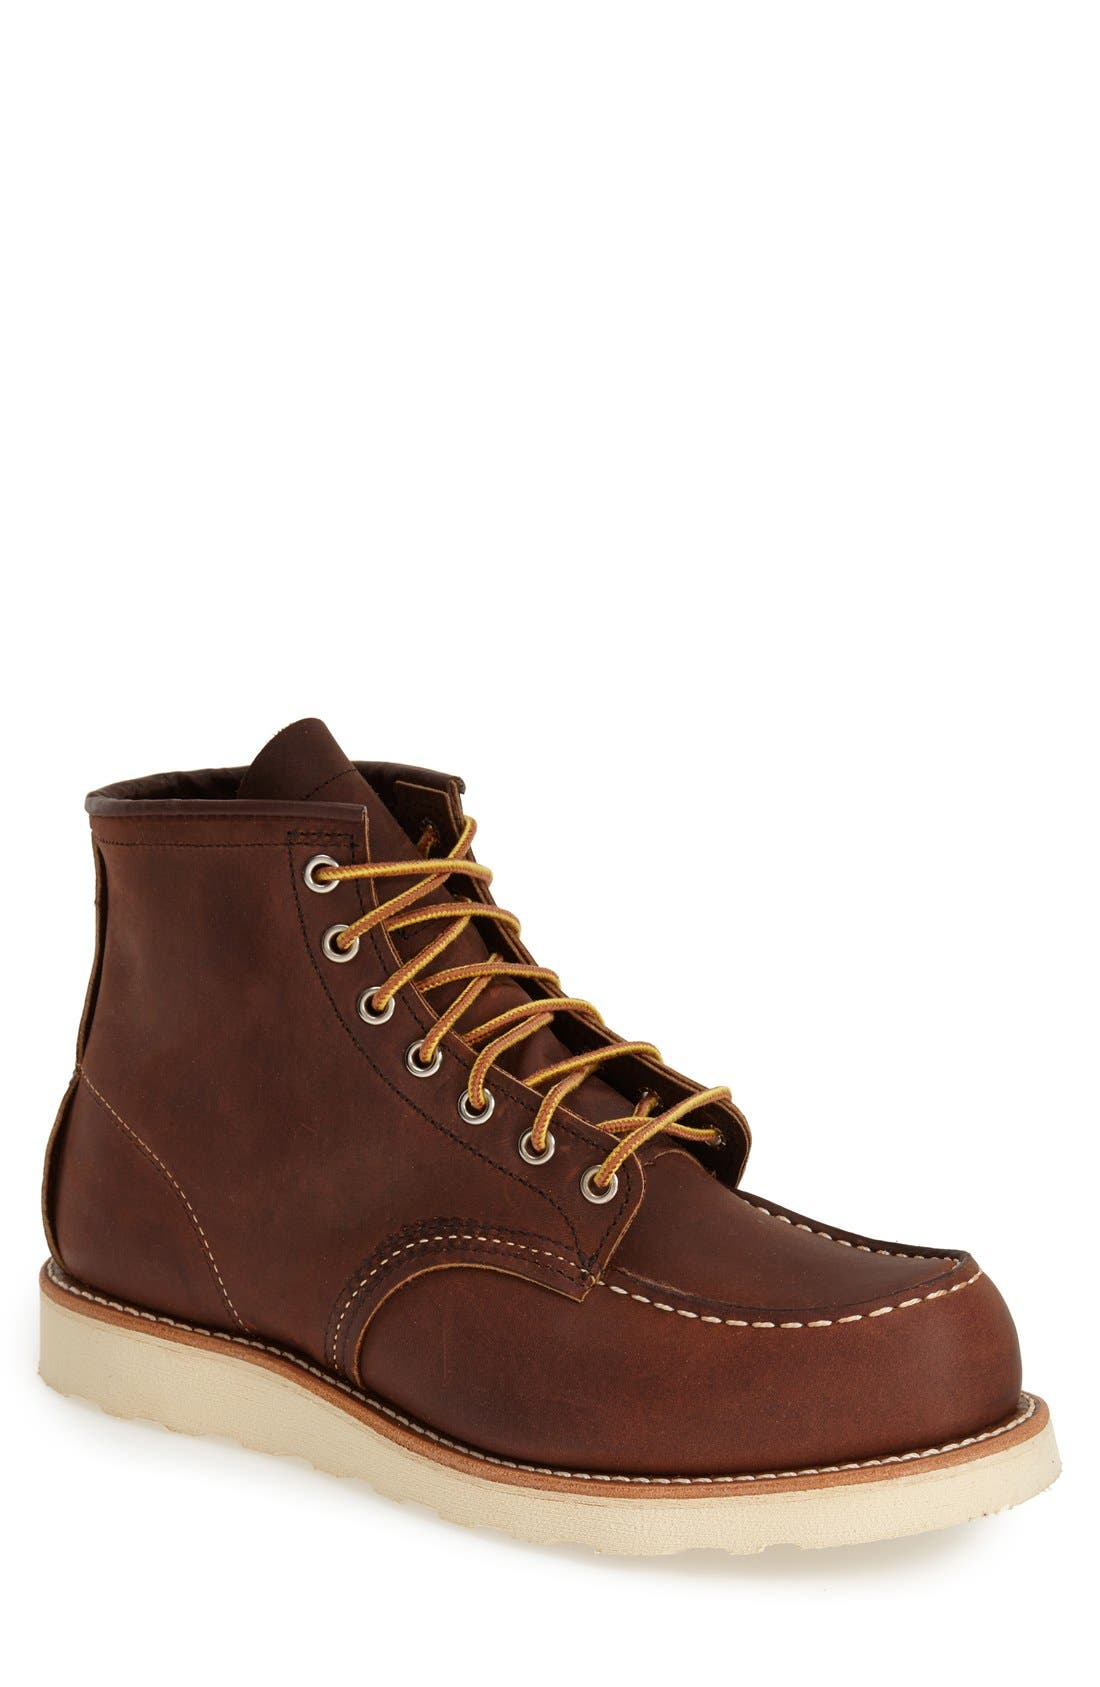 best sellers s boots nordstrom